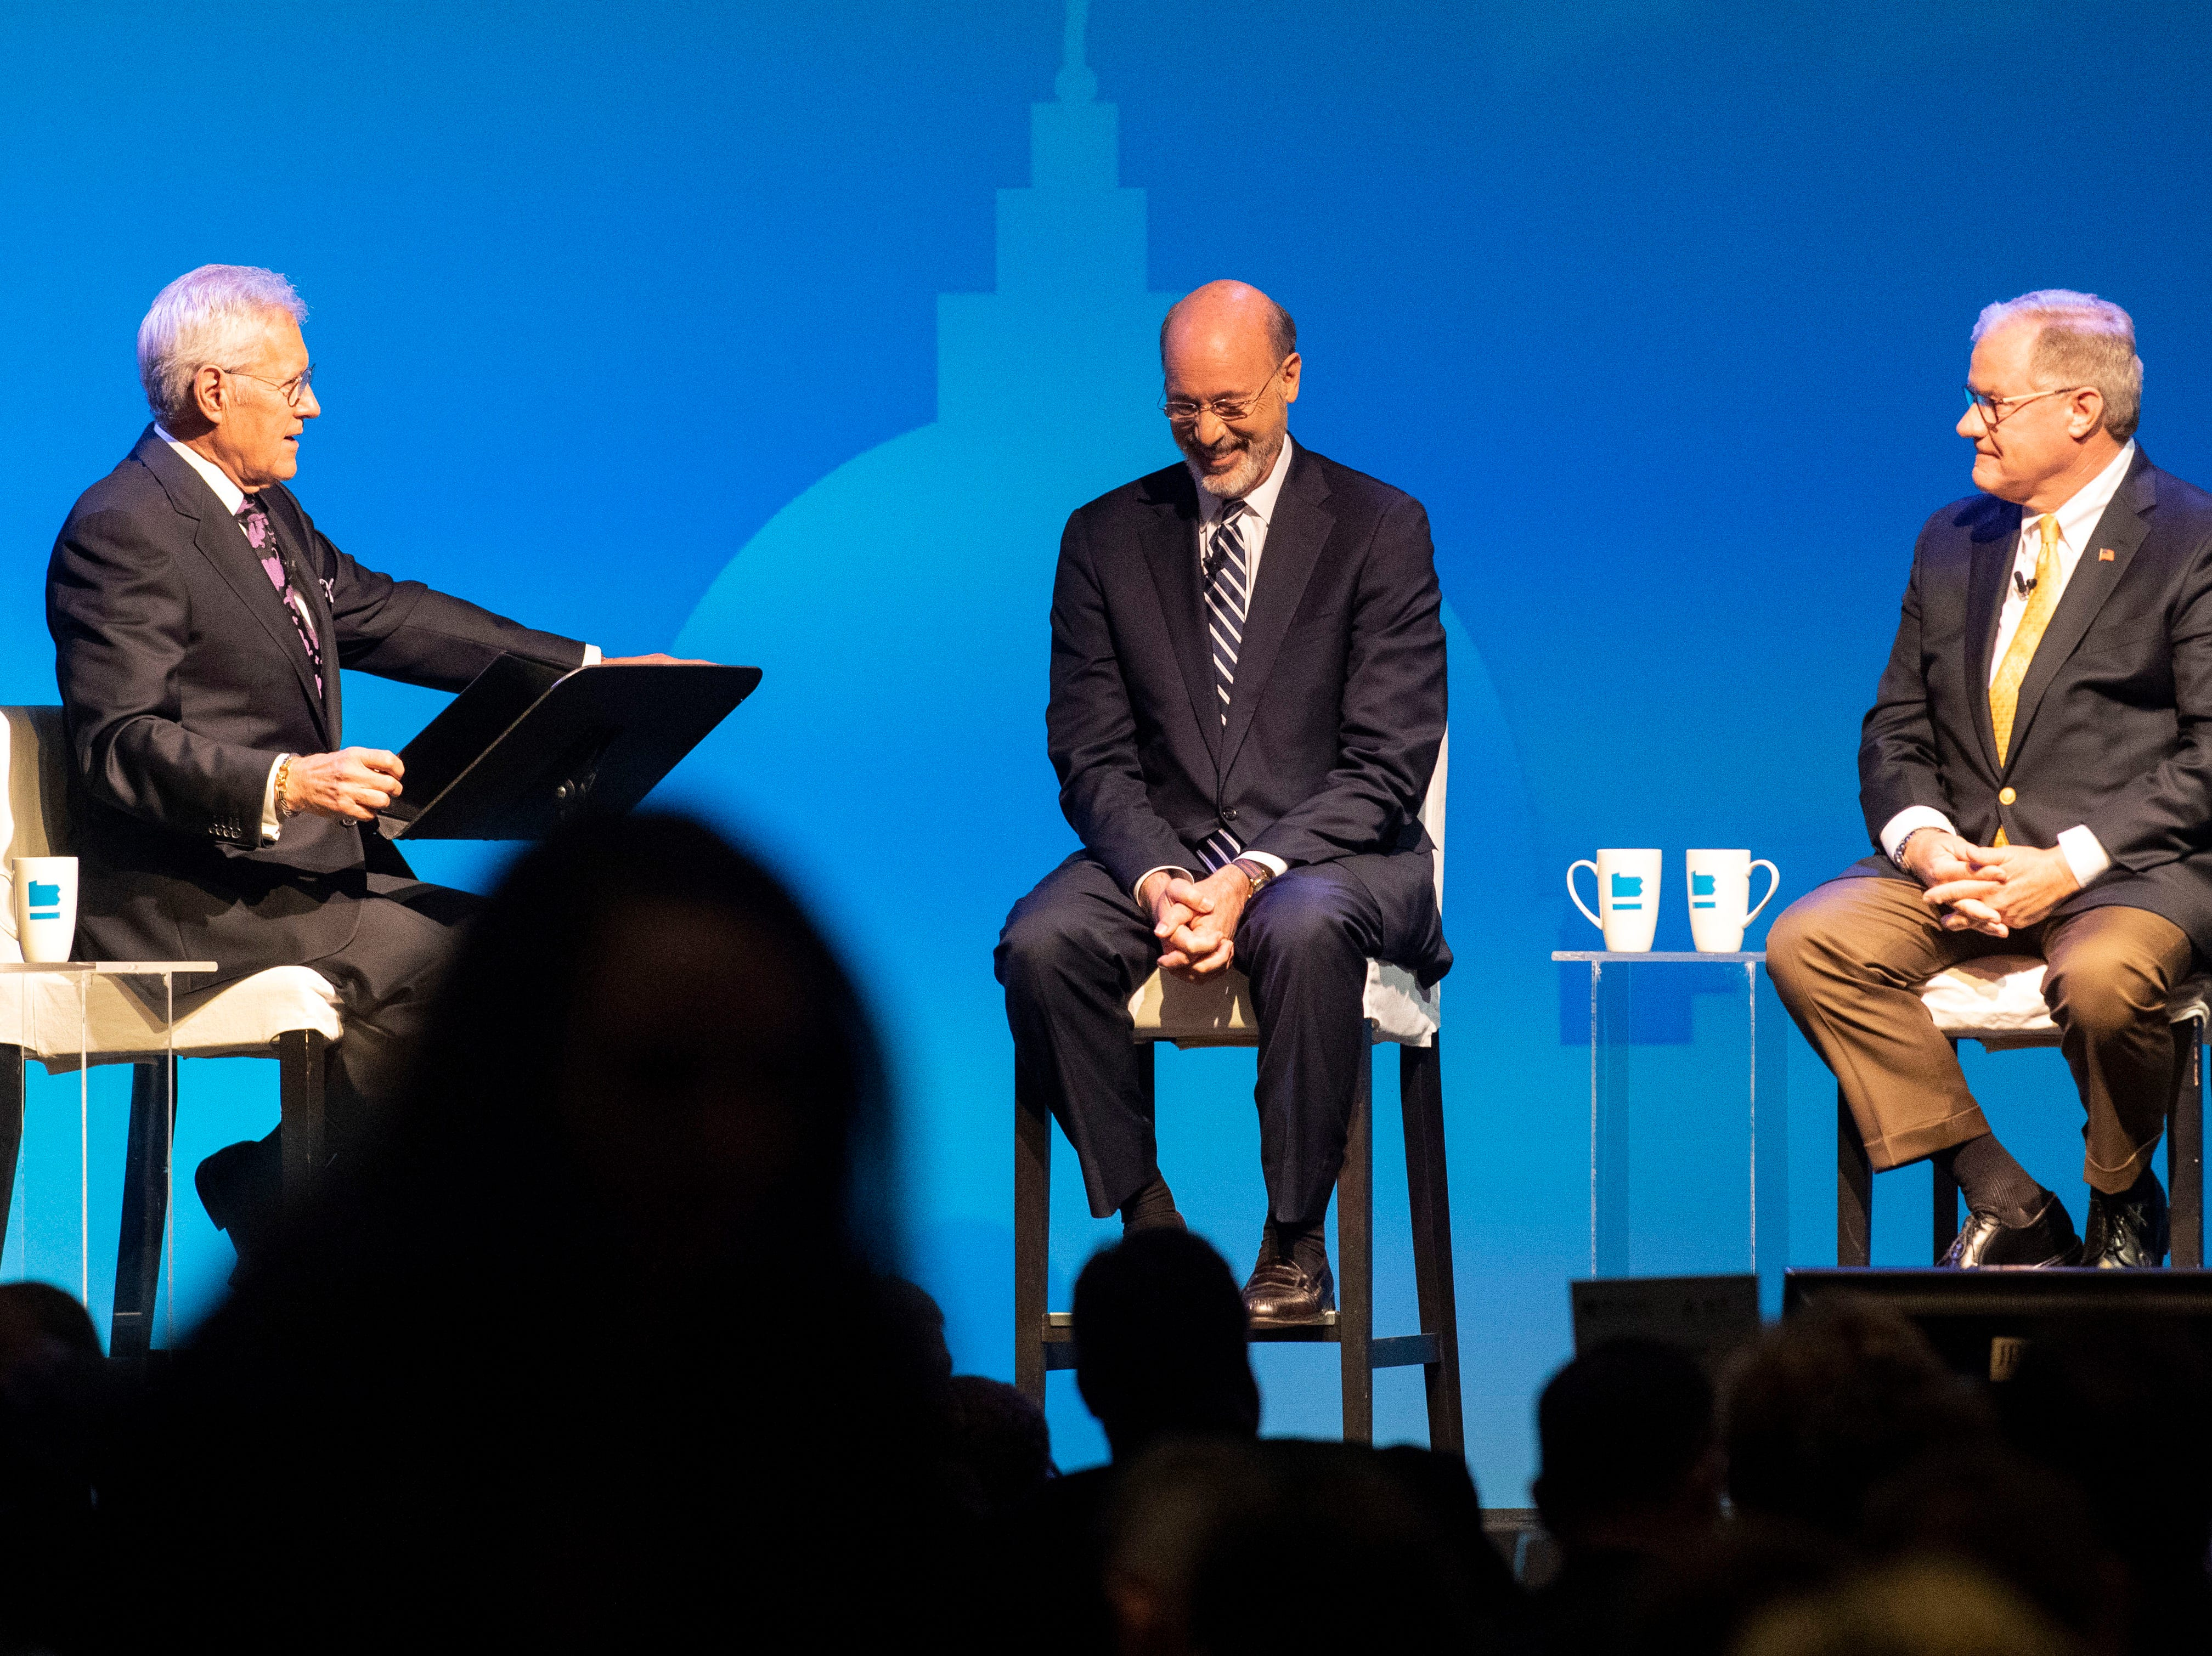 Gov. Tom Wolf, center, and Republican challenger Scott Wagner, right, laugh together during the gubernatorial debate, moderated by Alex Trebek, at Hershey Lodge on Monday, Oct. 1, 2018.